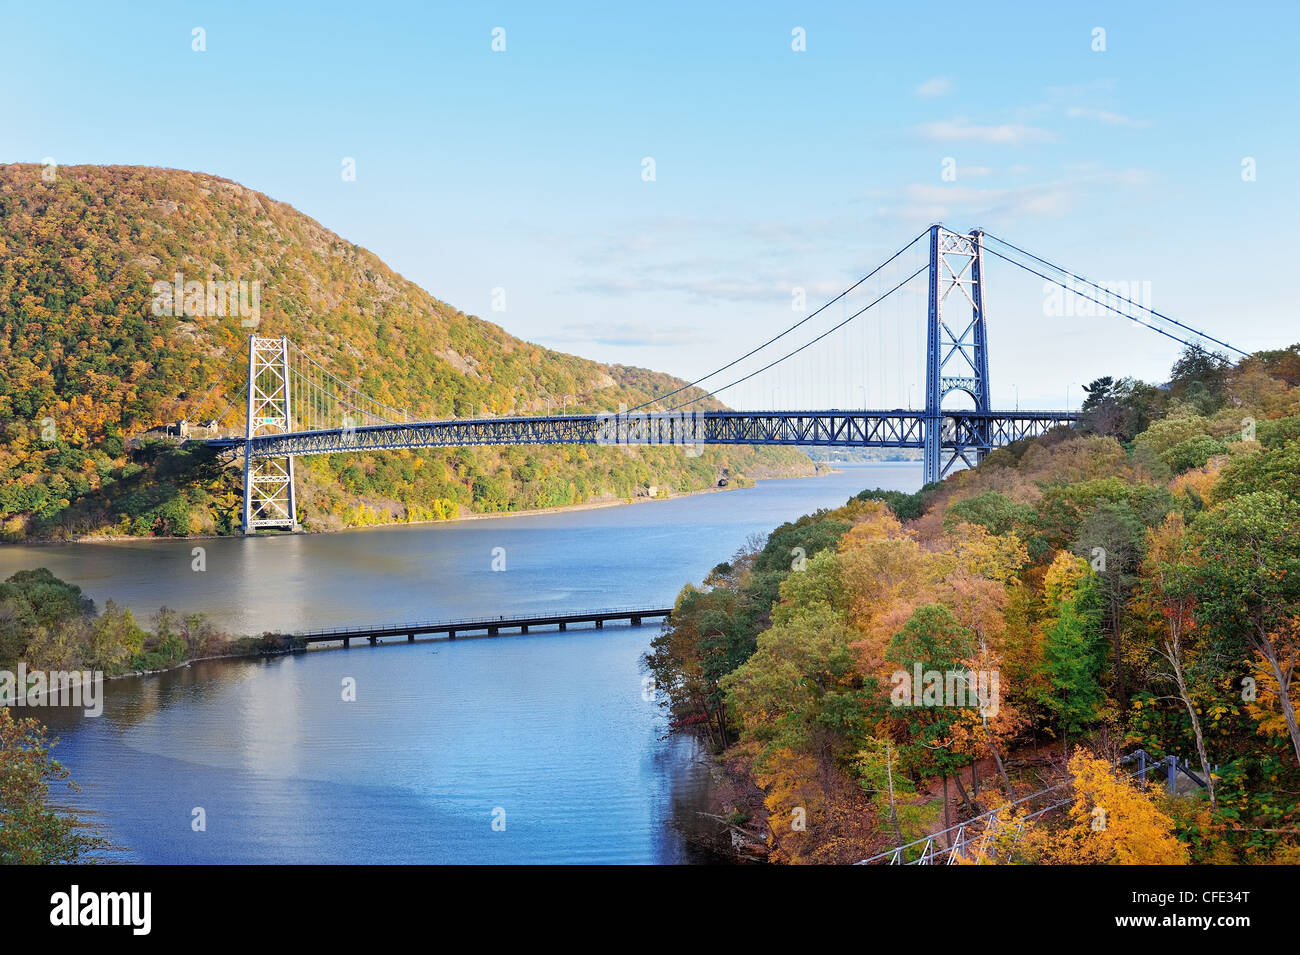 Bear Mountain with Hudson River and bridge in Autumn with colorful foliage and water reflection. - Stock Image